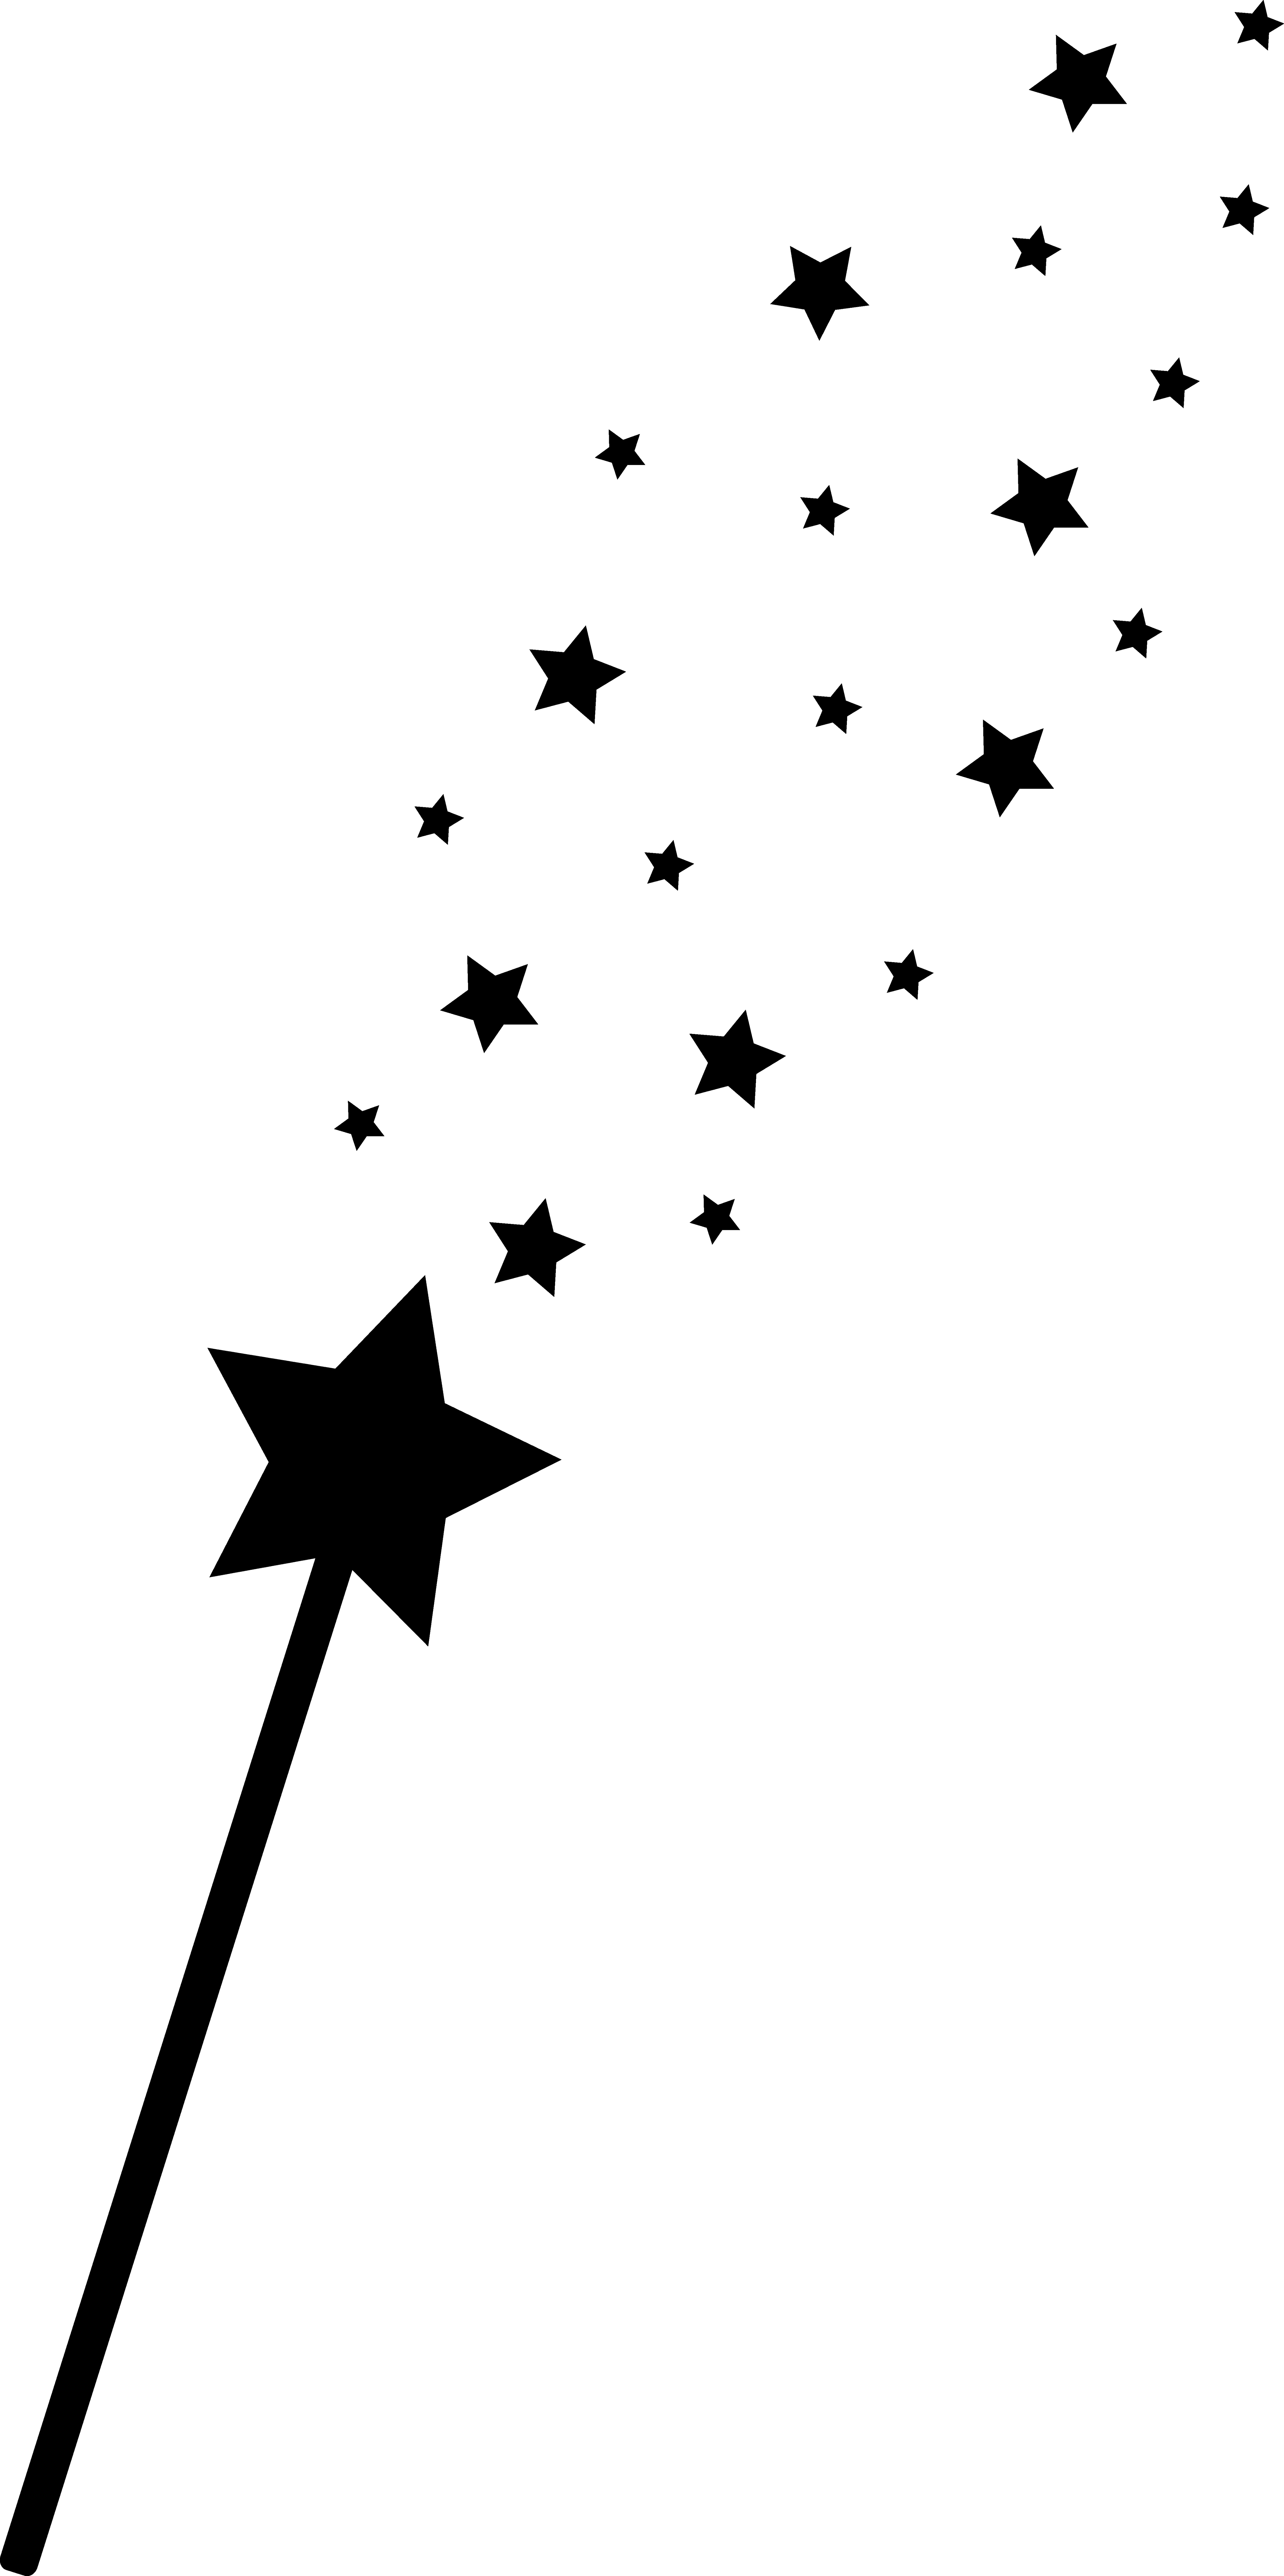 Fairy Wand Clip Art - Cliparts.co